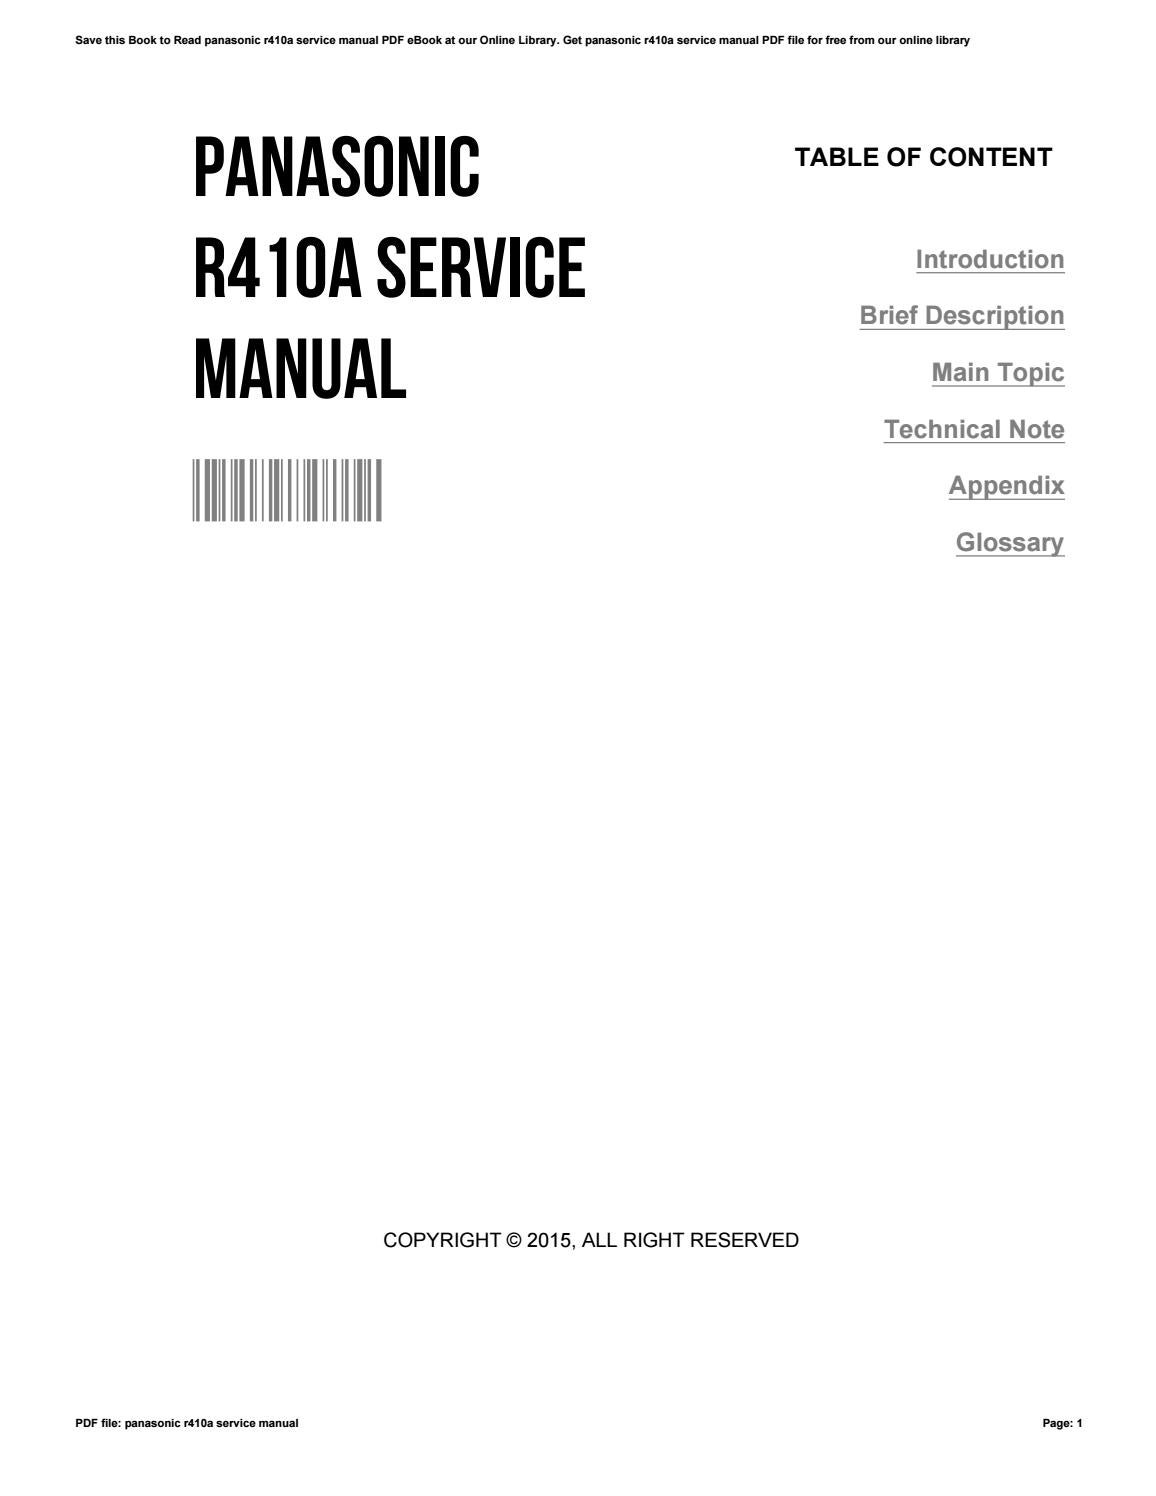 Panasonic r410a service manual by AdrienneNishimura2369